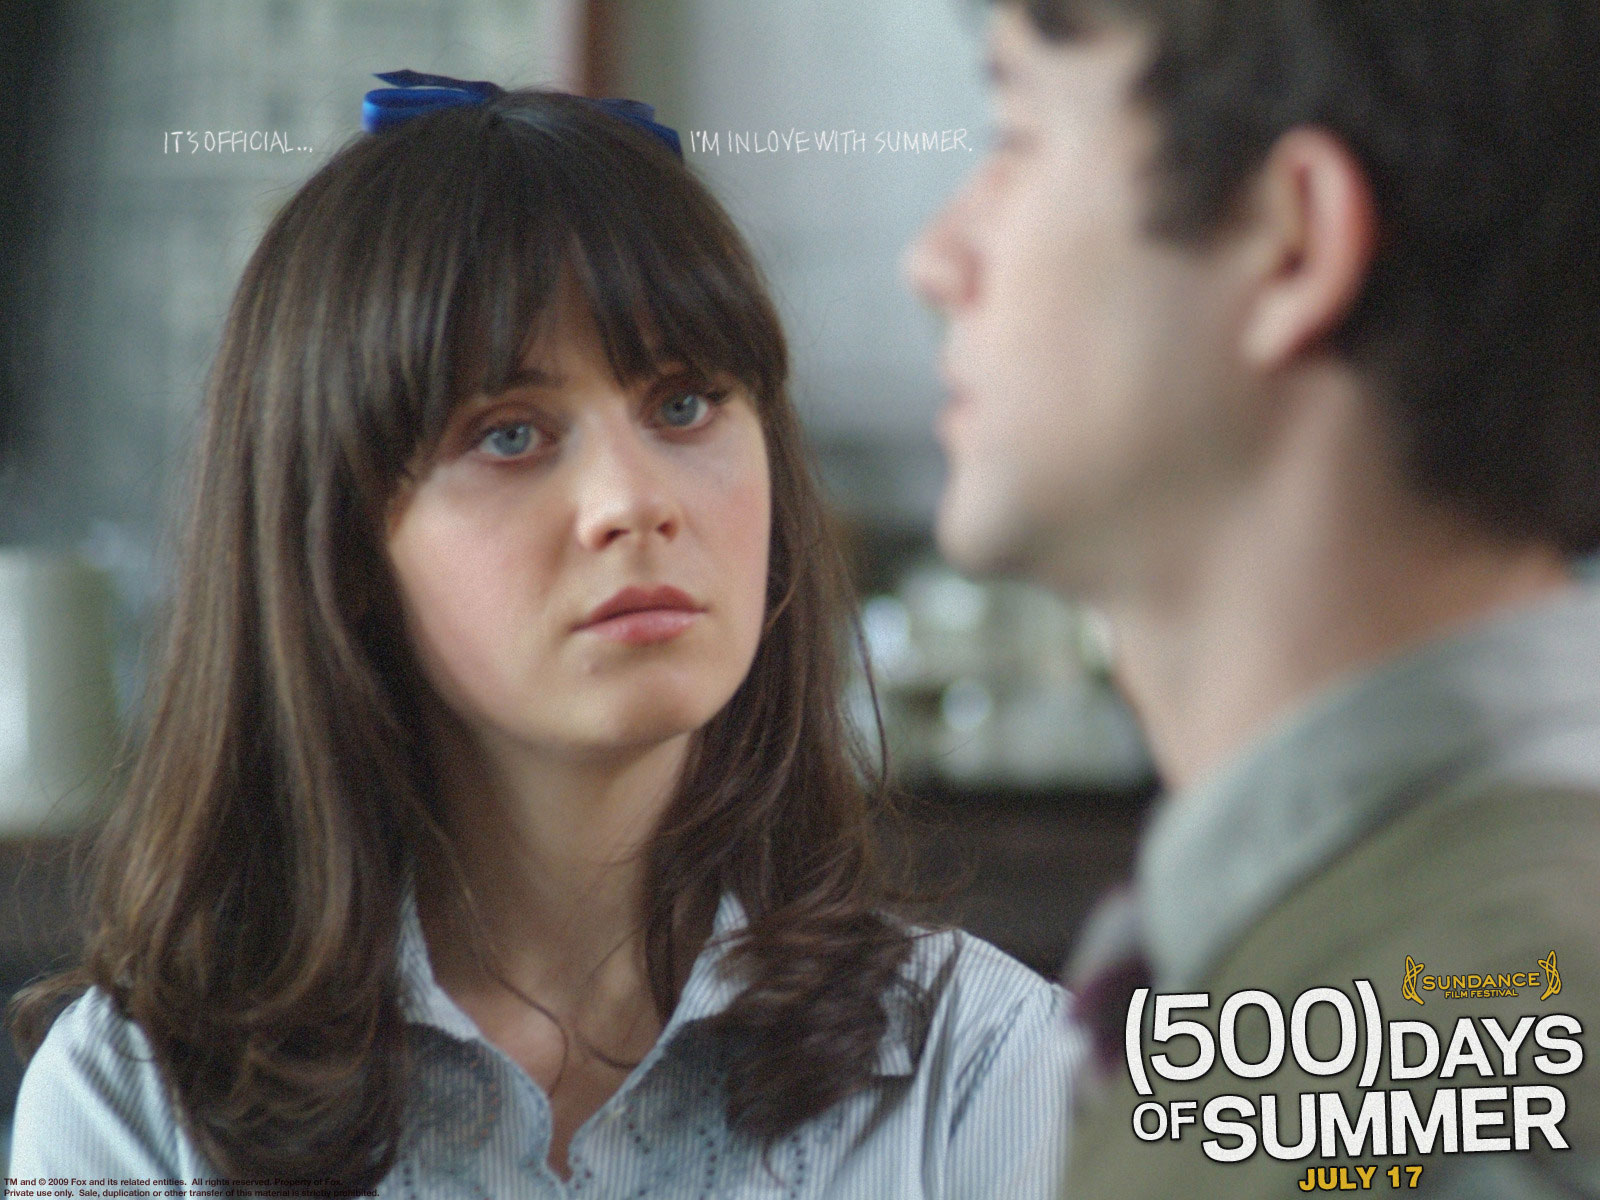 jimmy here: 500 days of summer wallpaper hd